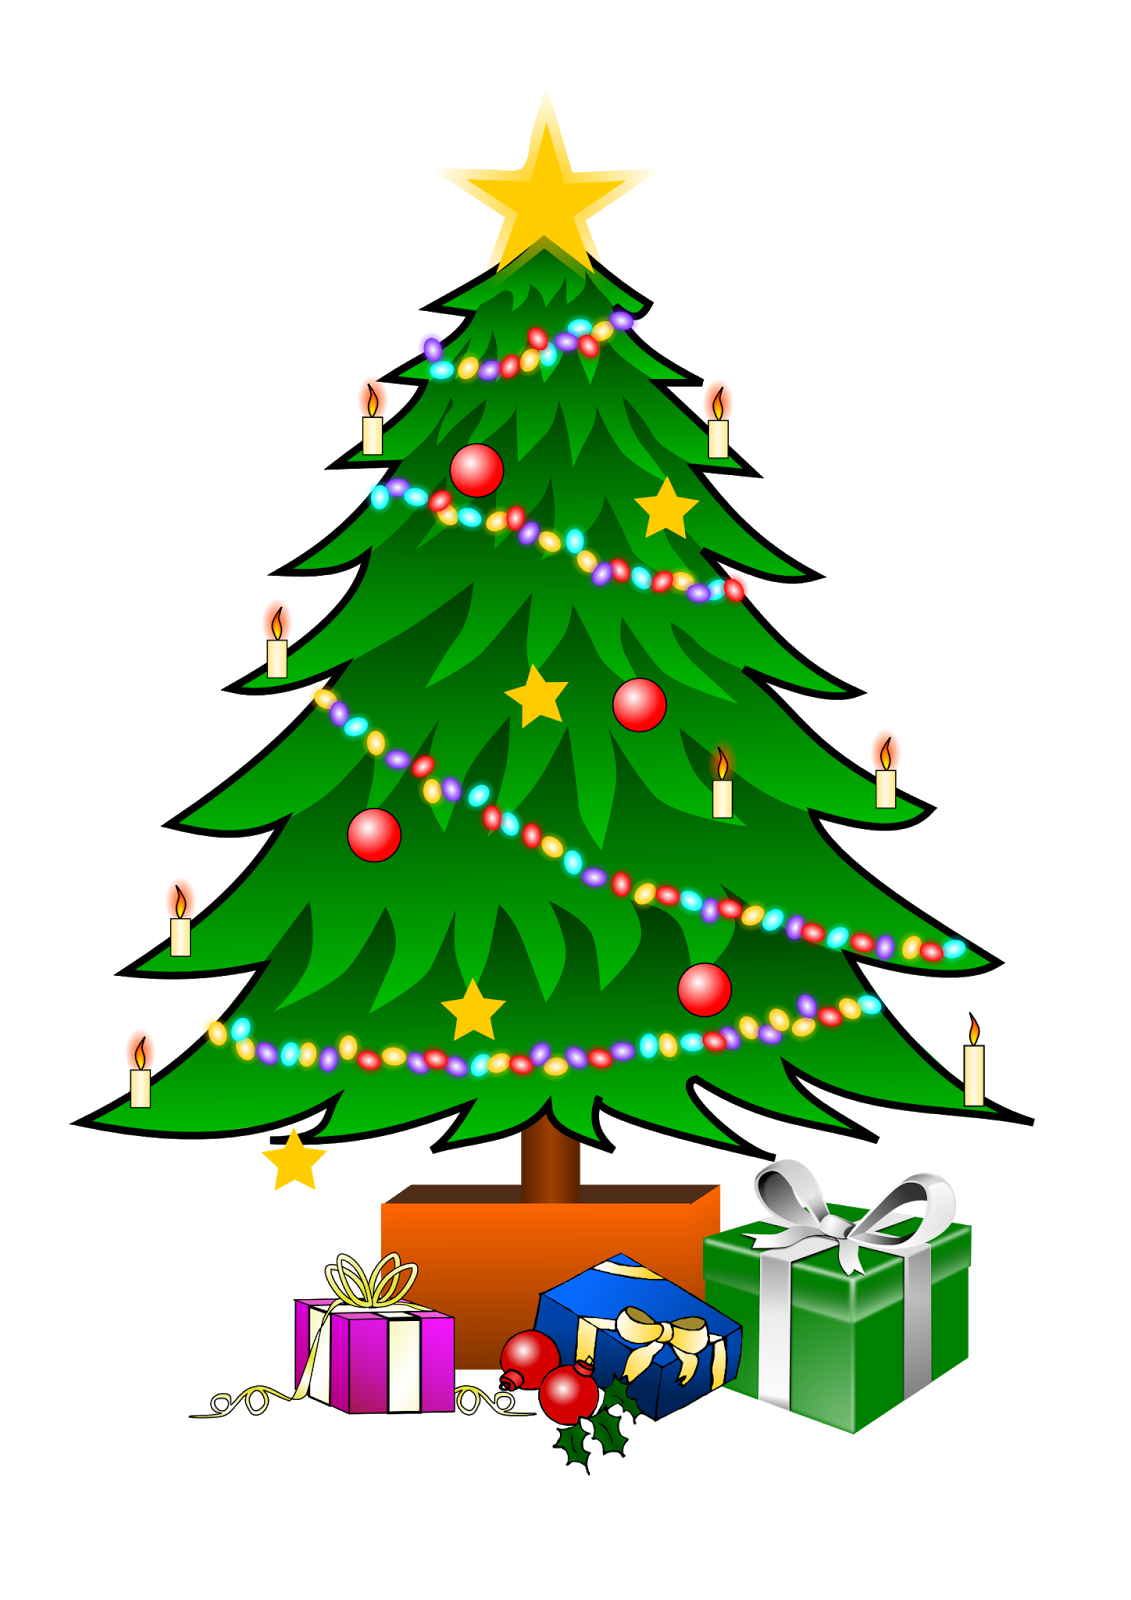 xmas tree pictures for kids - photo #3